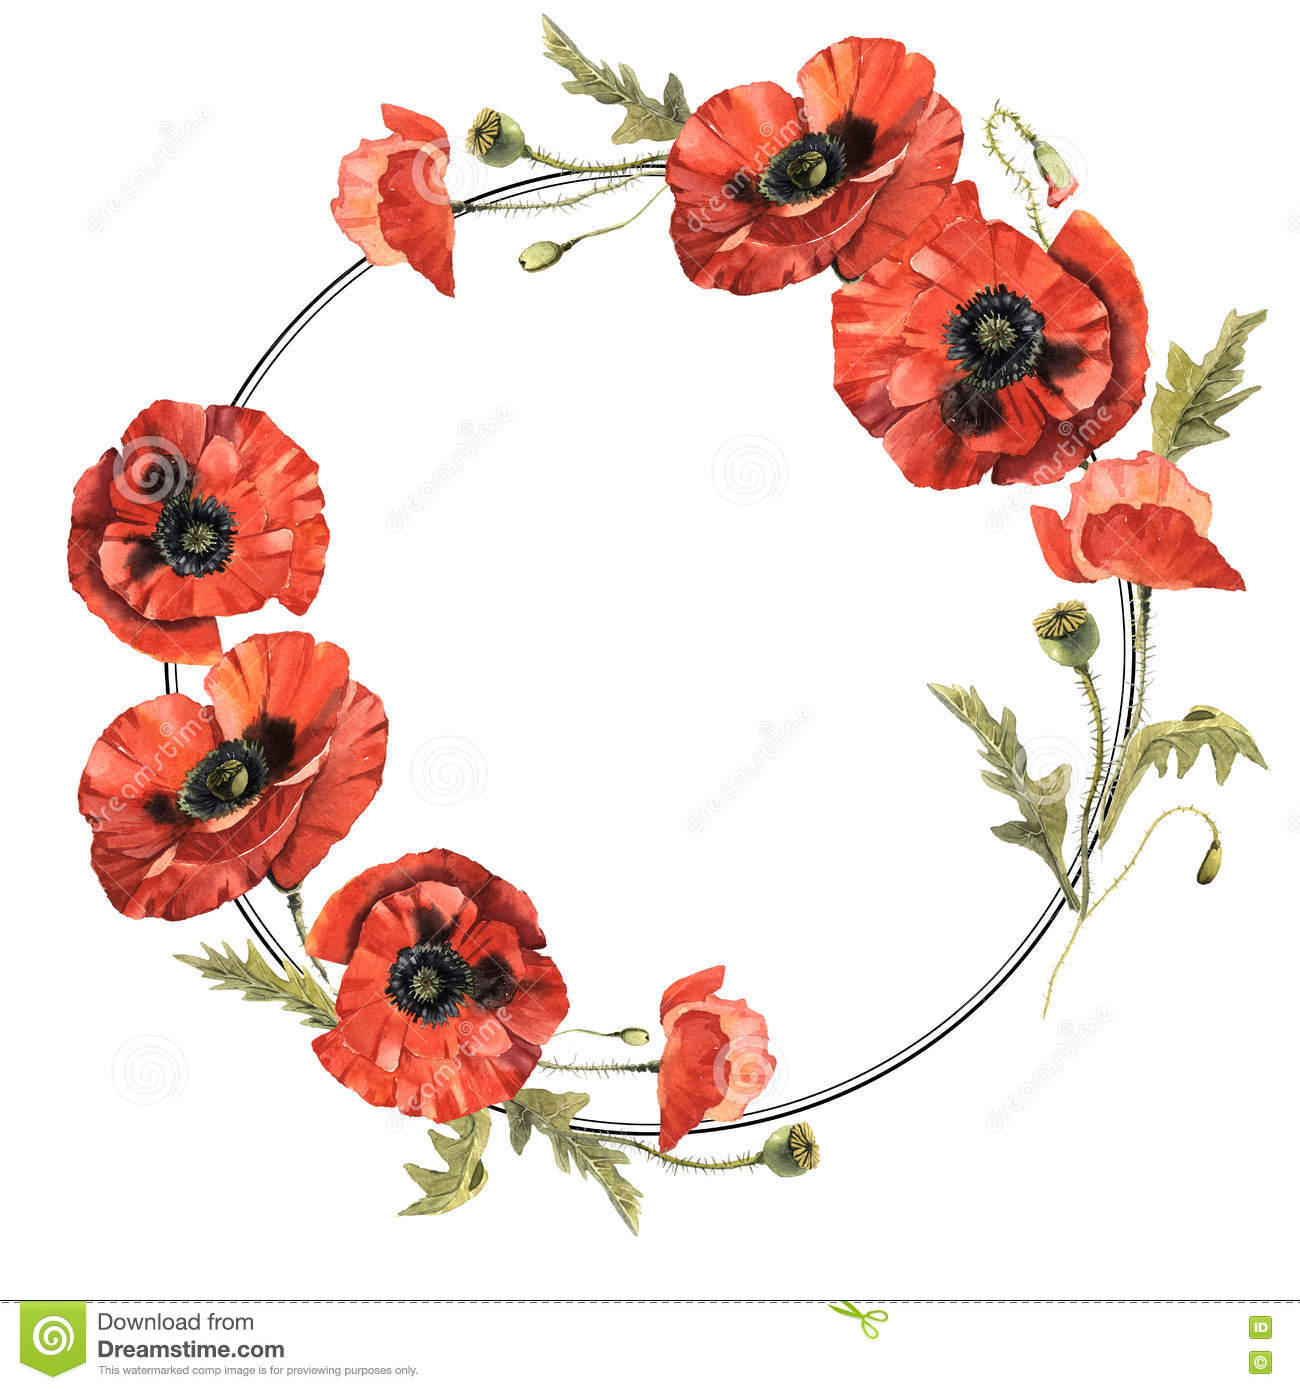 Wildflower poppy flower wreath in a watercolor style isolated stock download comp mightylinksfo